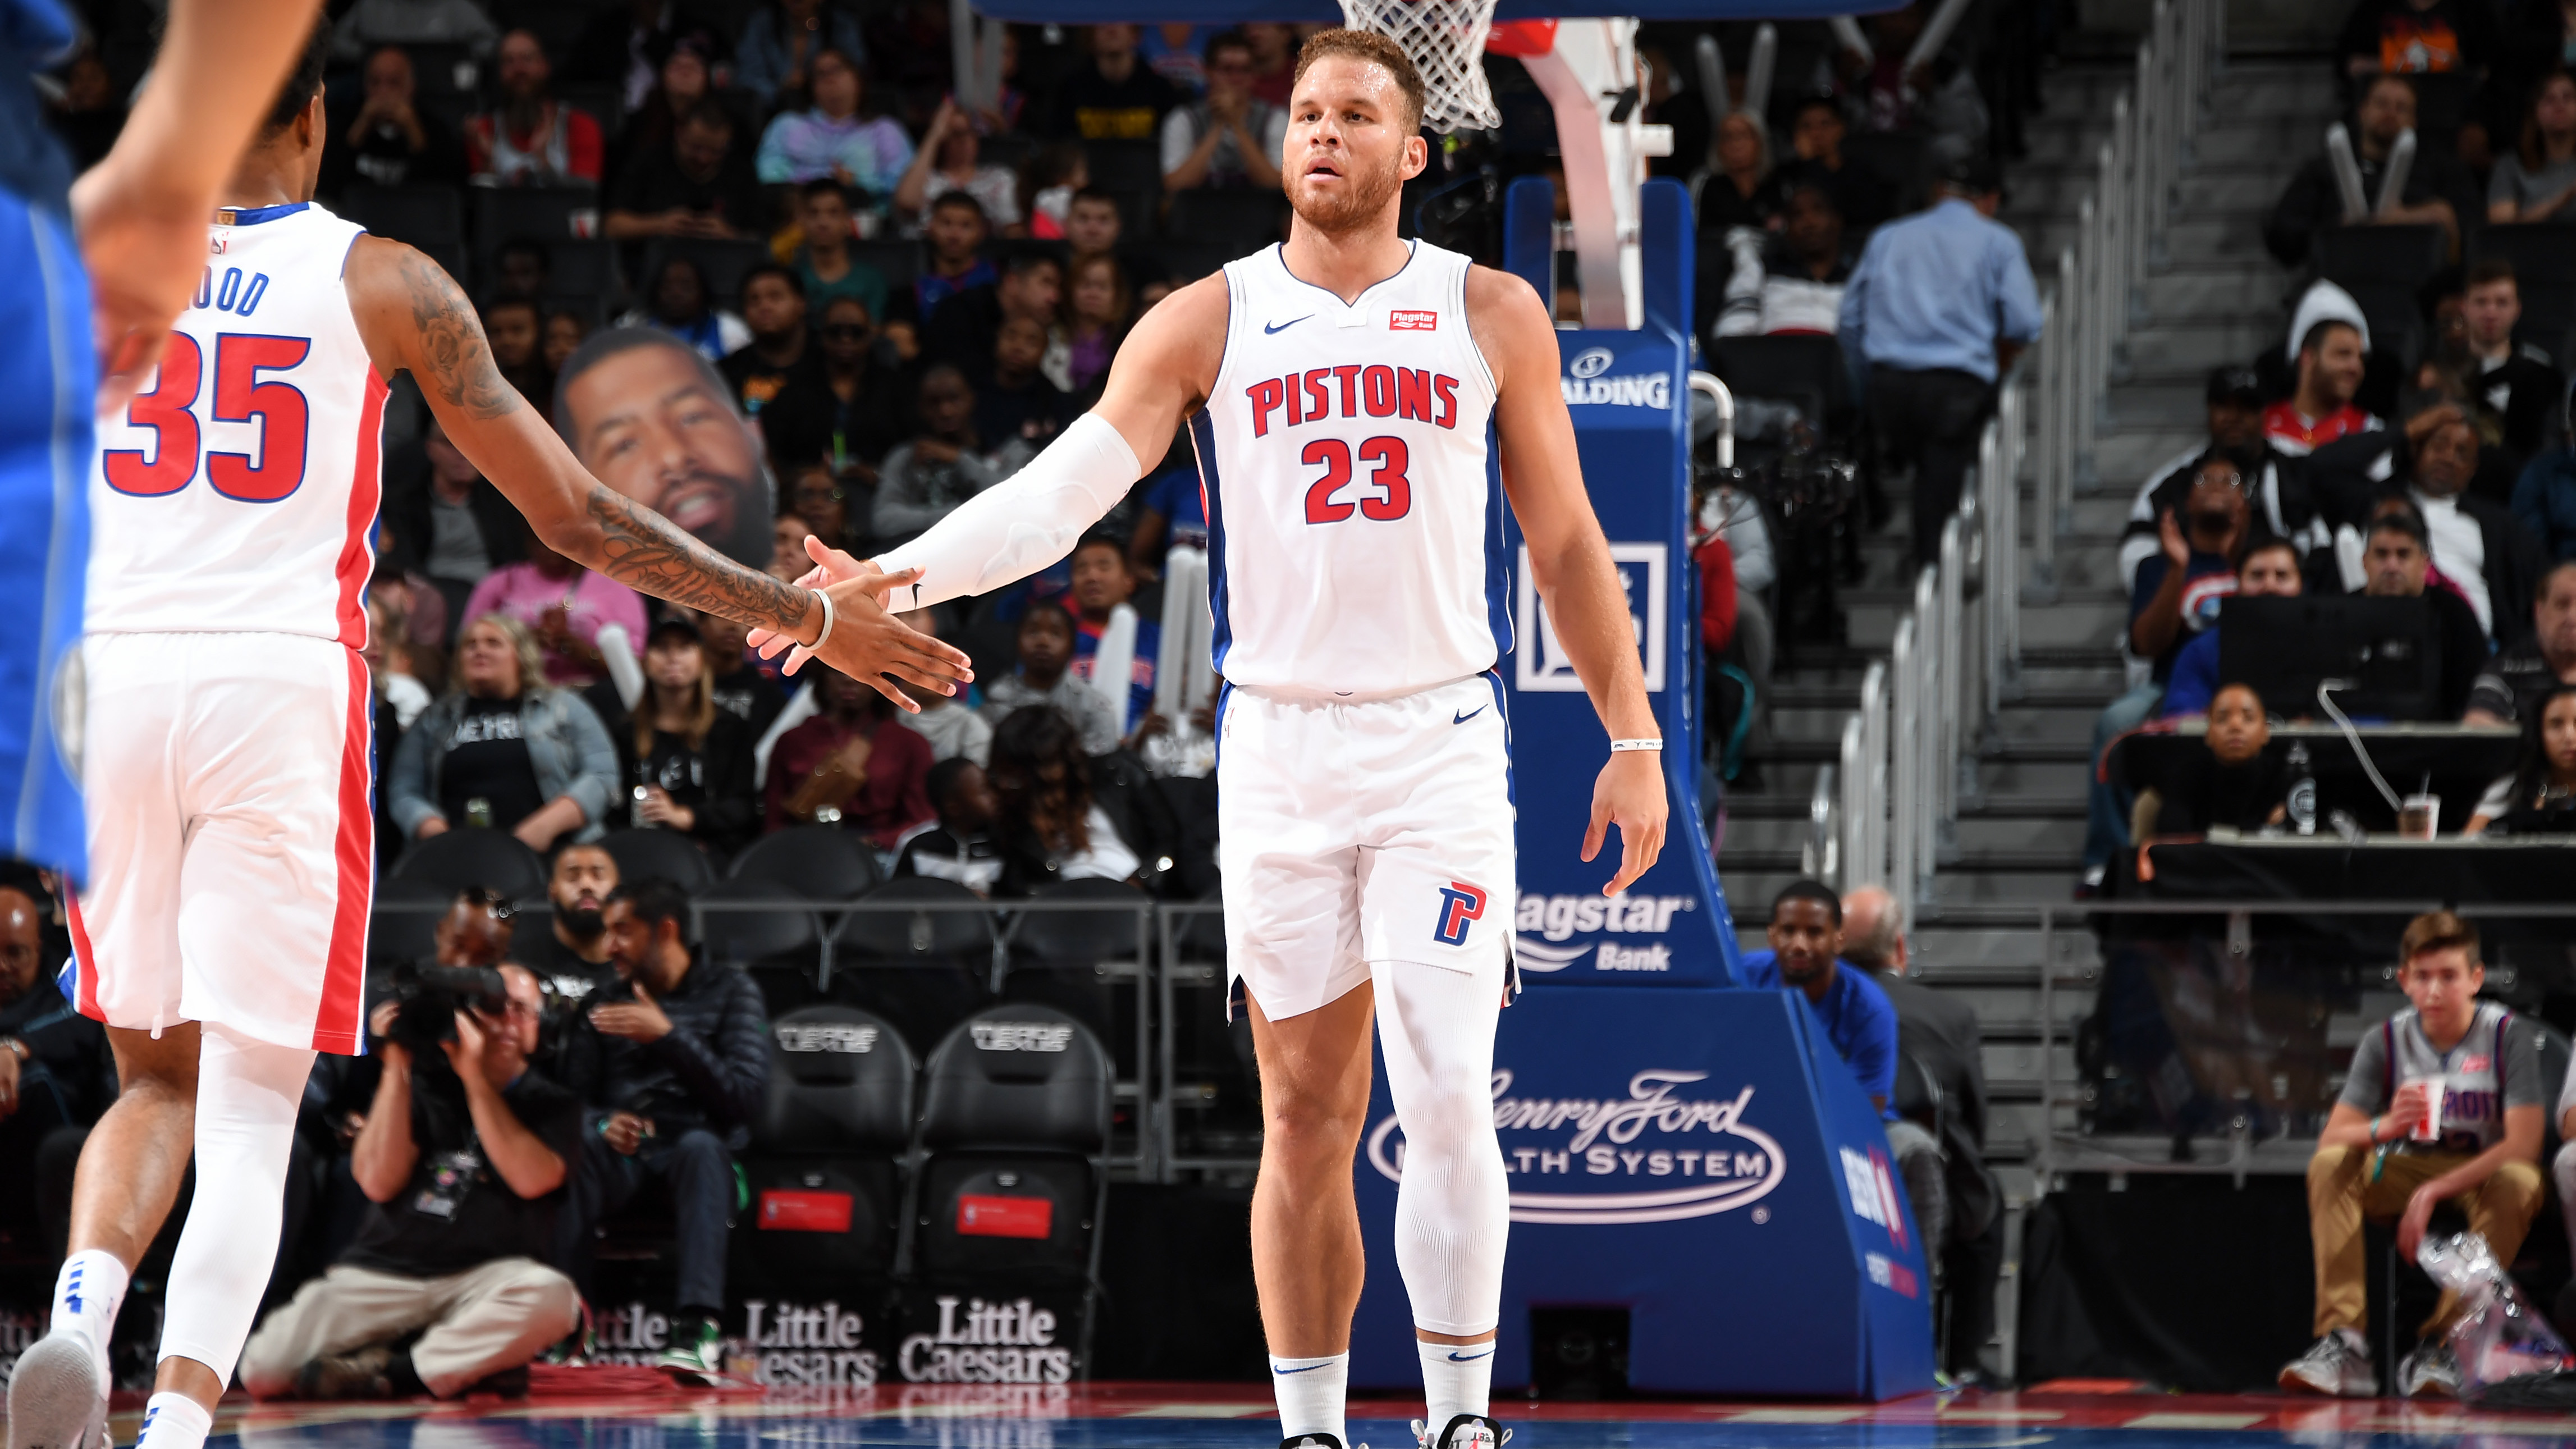 Blake Griffin Reveals Why He Doesn't Play in Retro Air Jordans